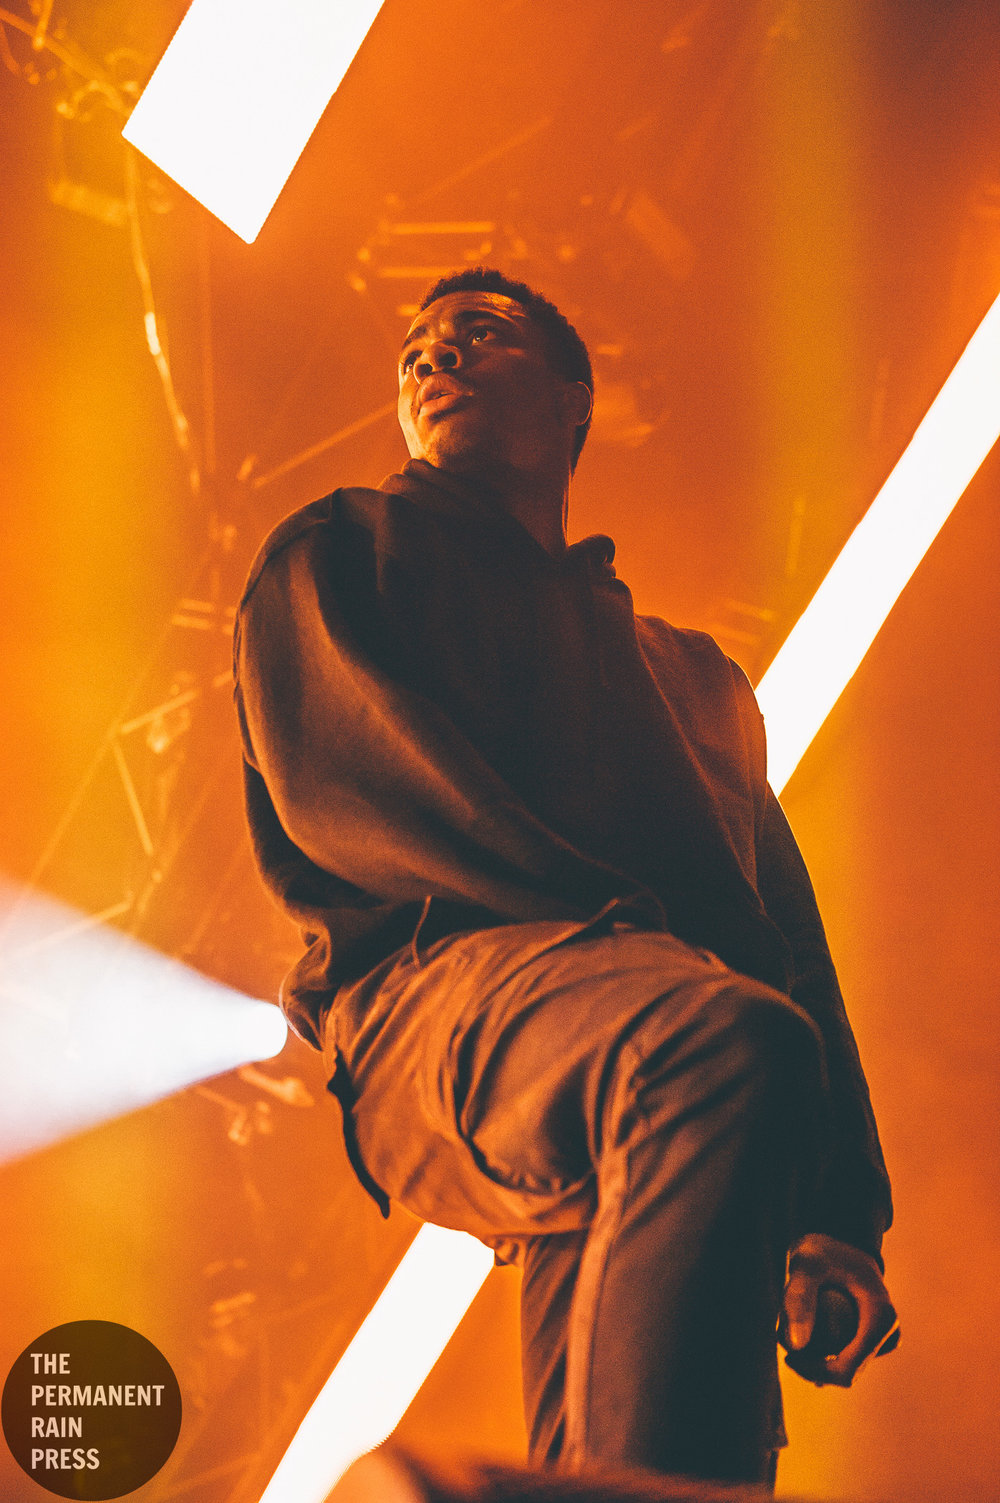 3_Vince_Staples-Seattle-Timothy_Nguyen-20170903 (14 of 15).jpg